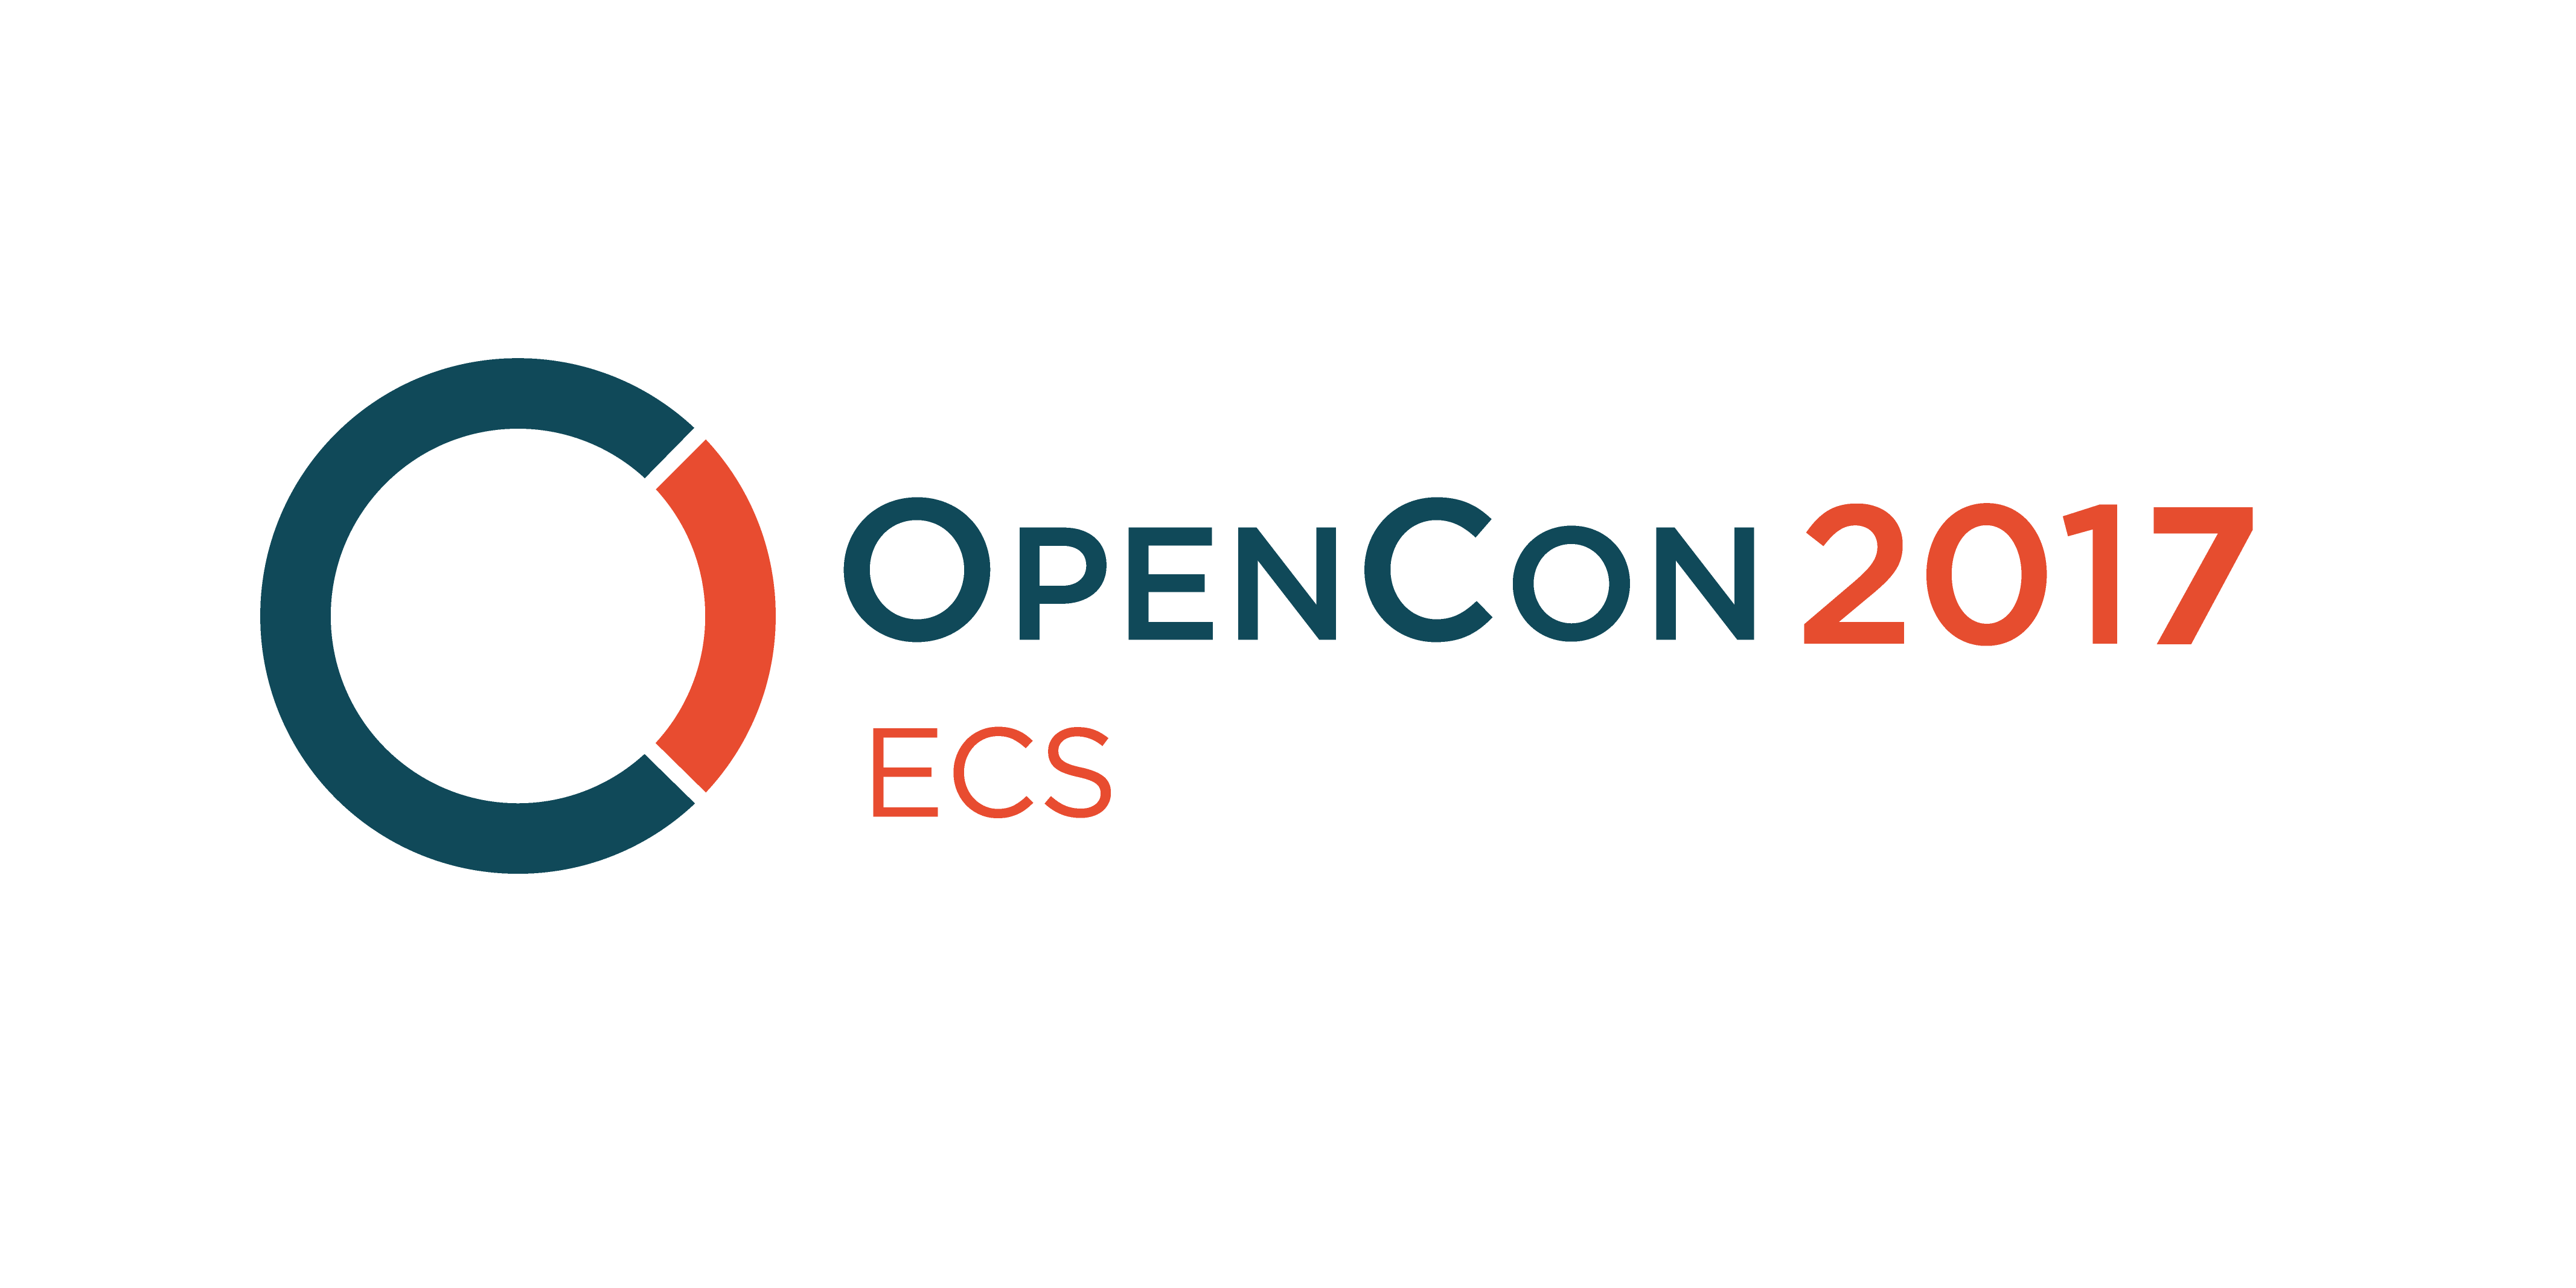 ECS_OpenCon_2017_-_Long_-_White-01.png